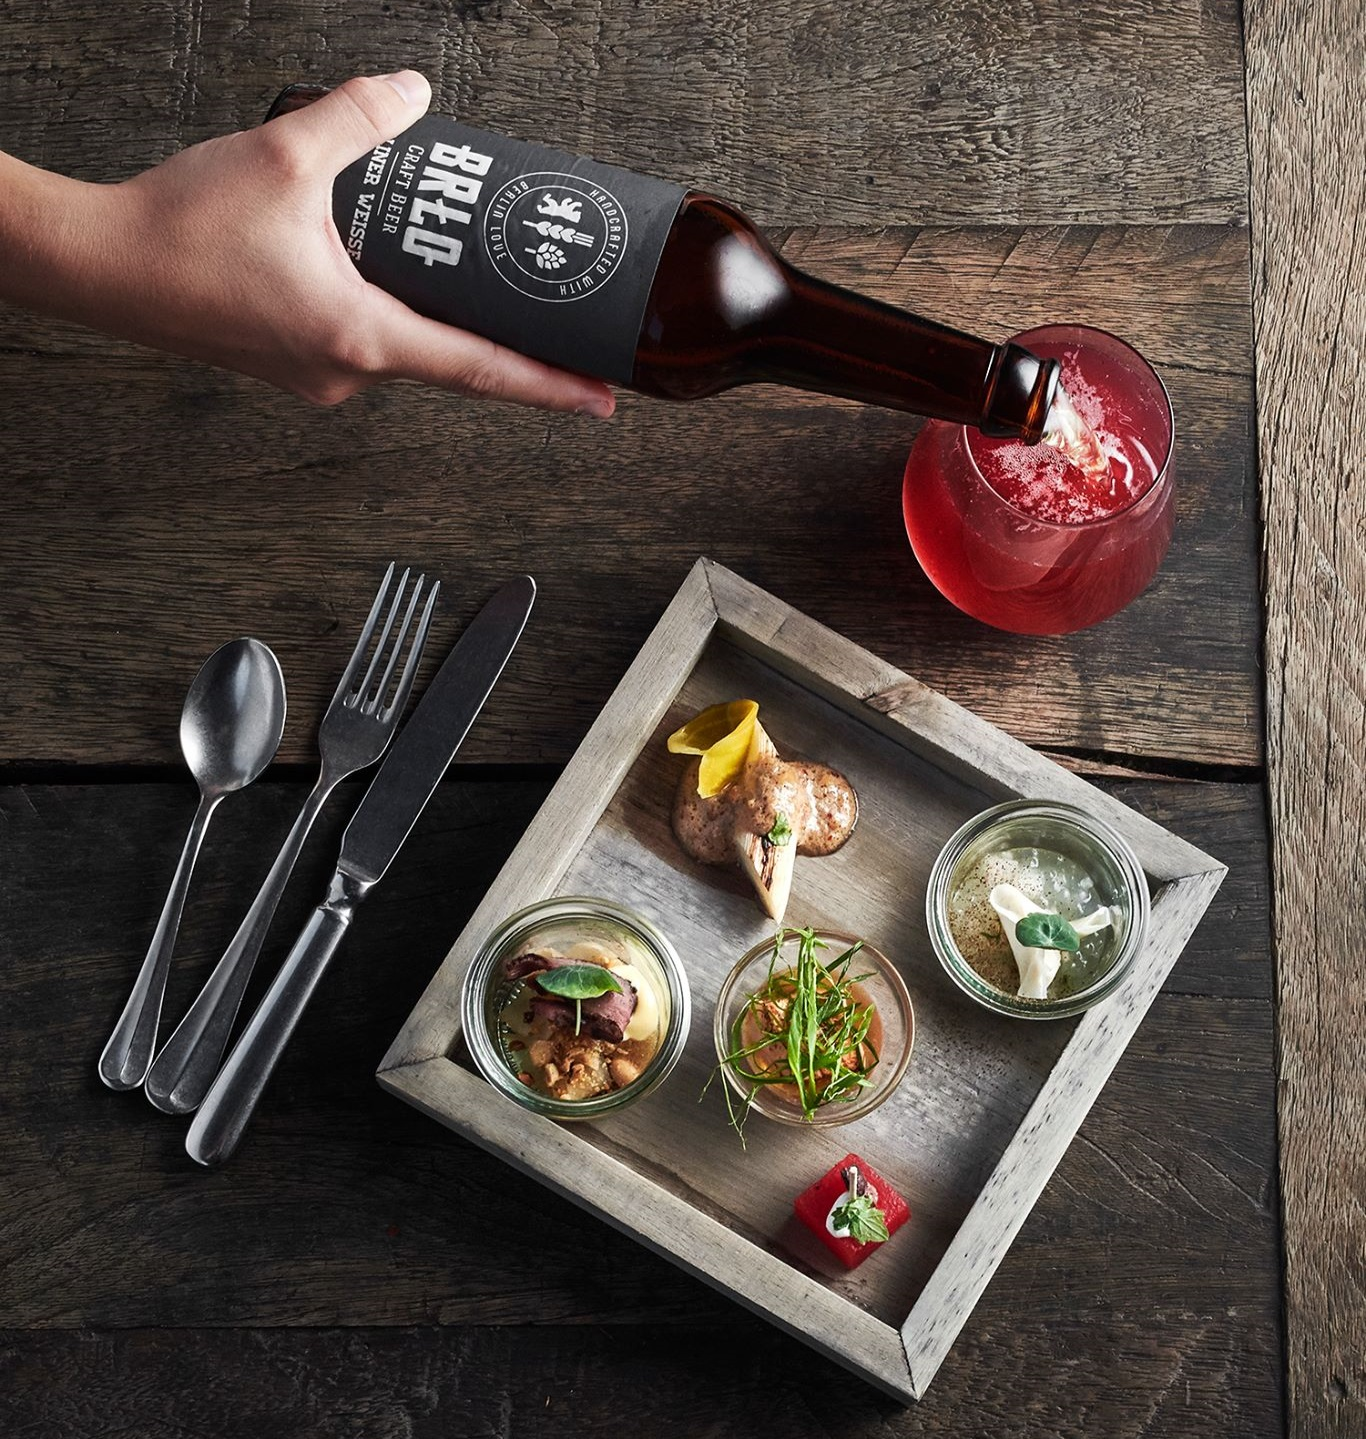 BRLO Tastingboard with delicious dishes and a glass of BRLO Berliner Weisse beer poured from a bottle